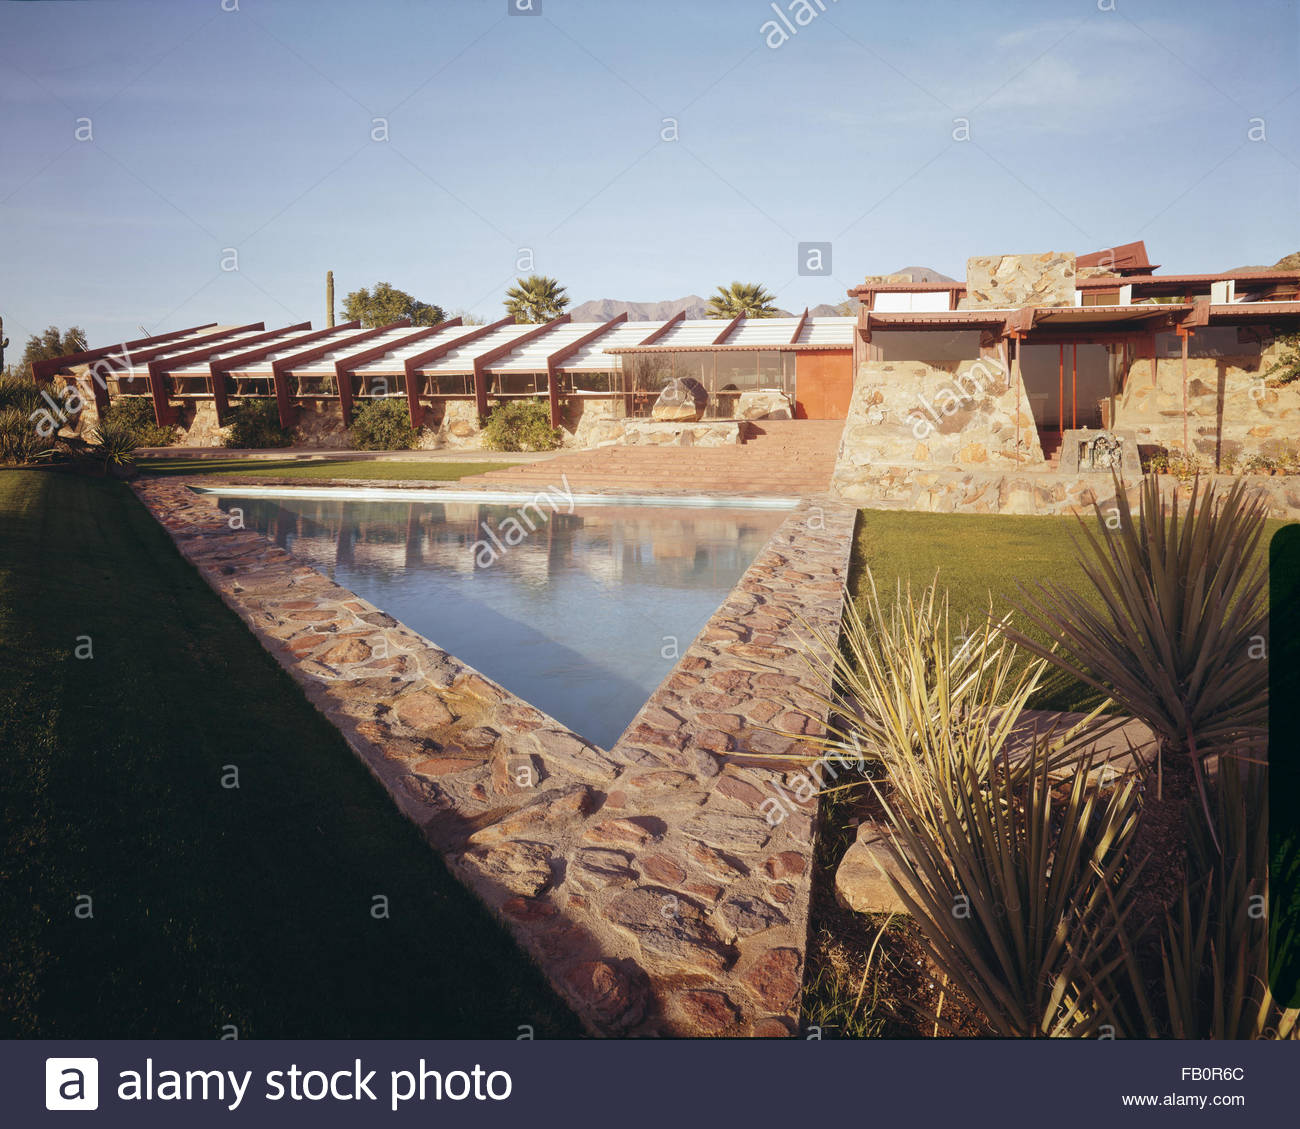 Taliesin West in Scottsdale (Ariz.), 1942 Feb.-1963. Reflecting pool with building behind. - Stock Image